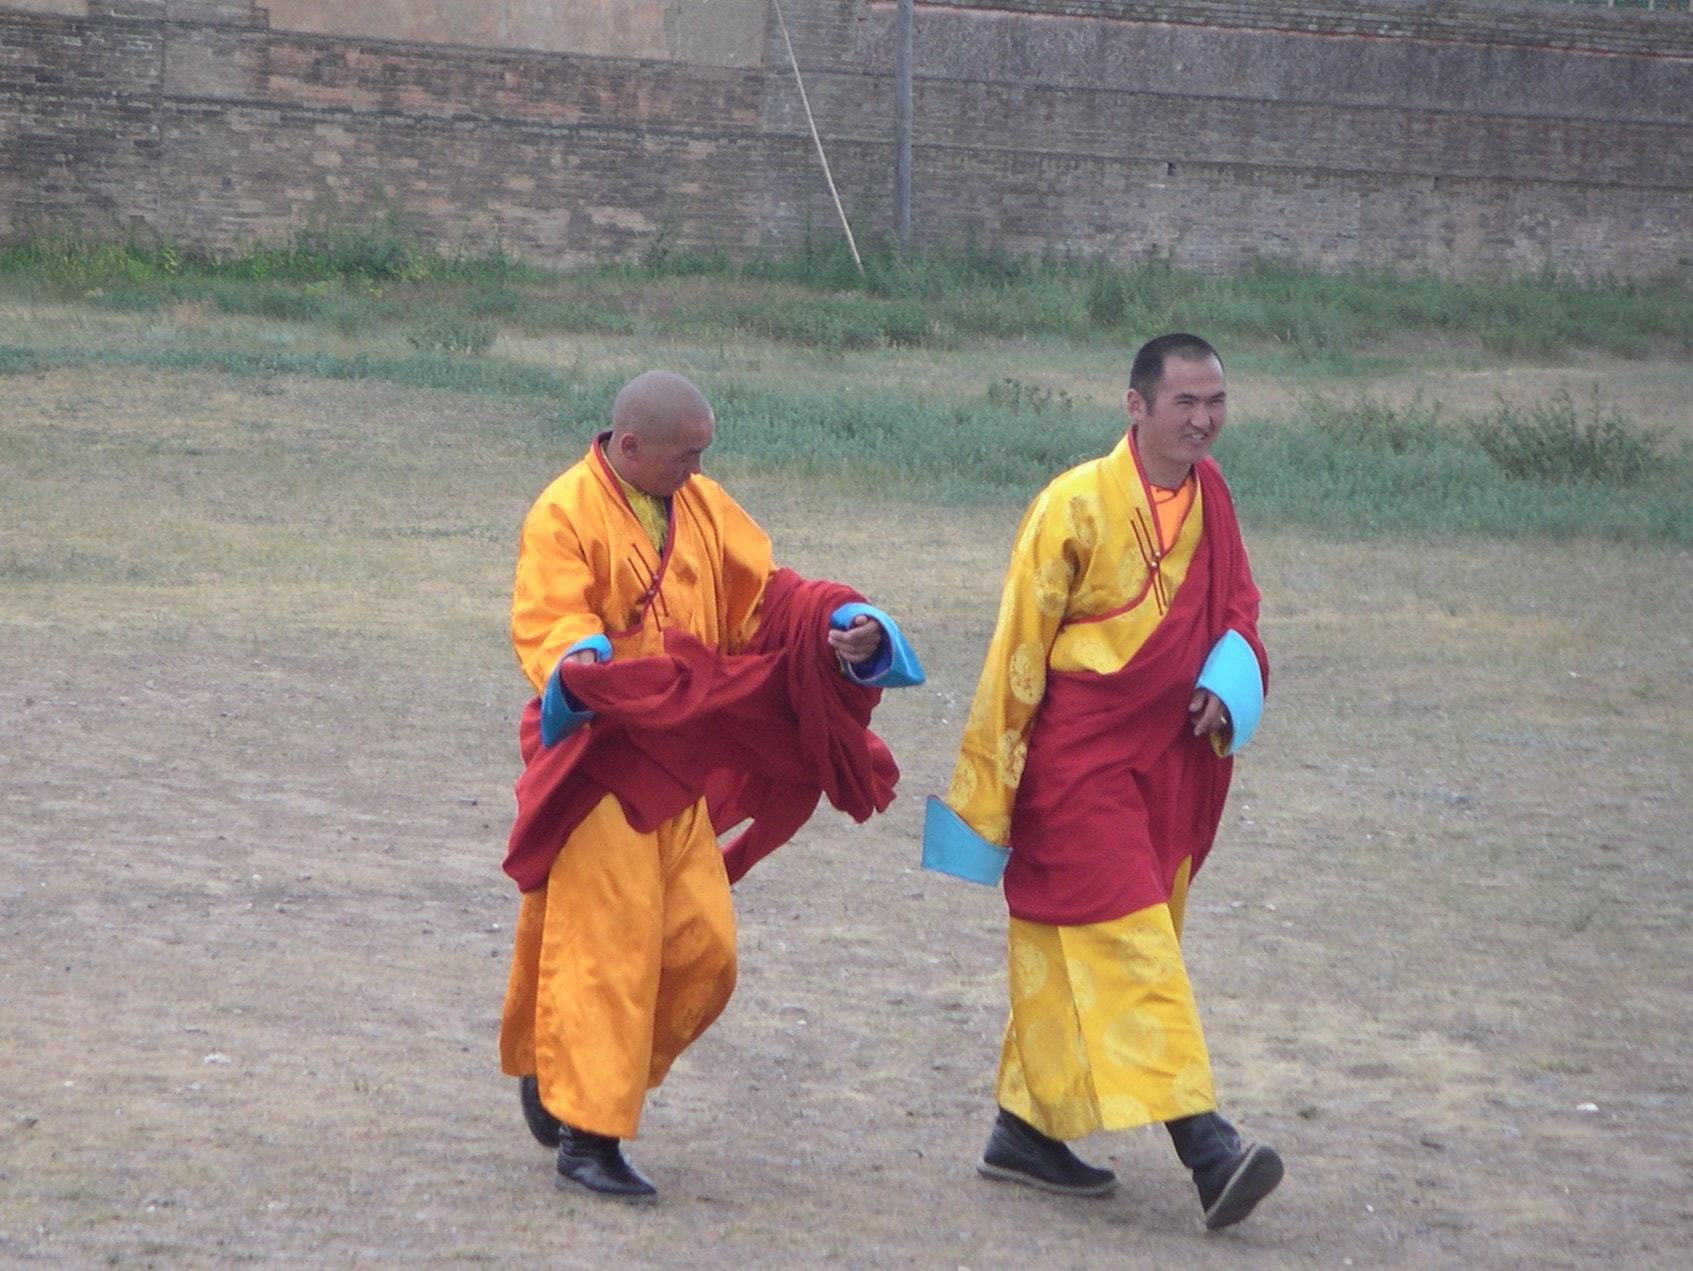 Buddhist monks in Mongolia.